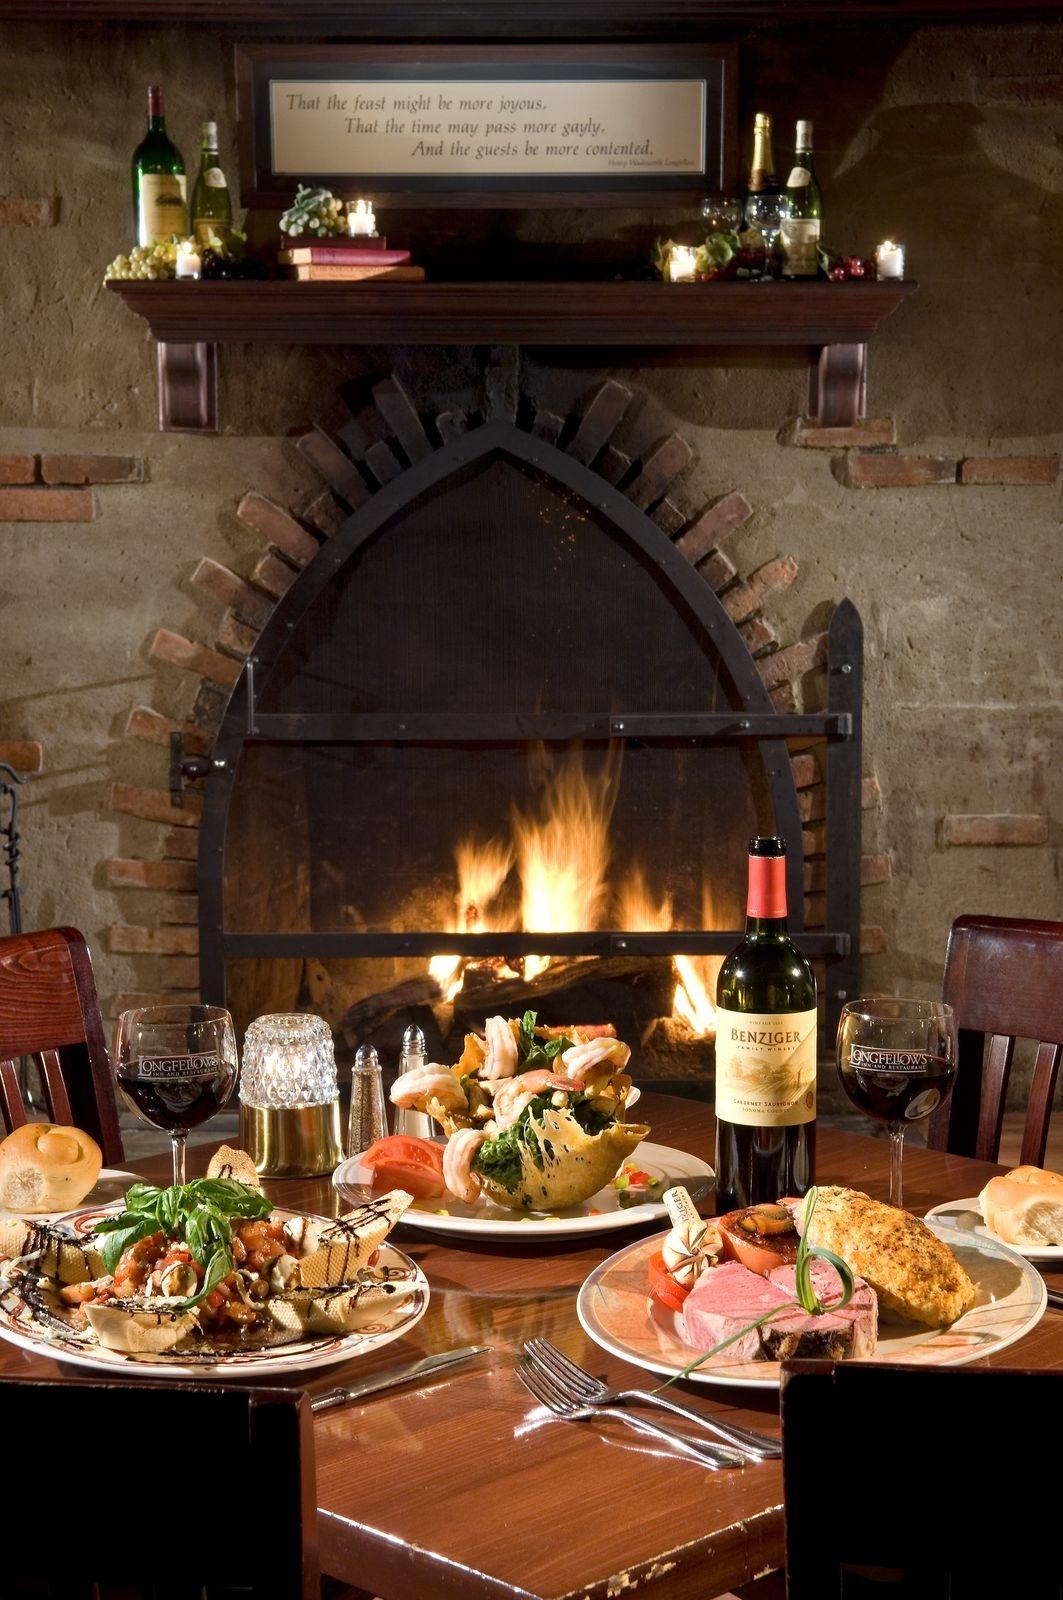 Extravagant dinner set at a table beside a fireplace